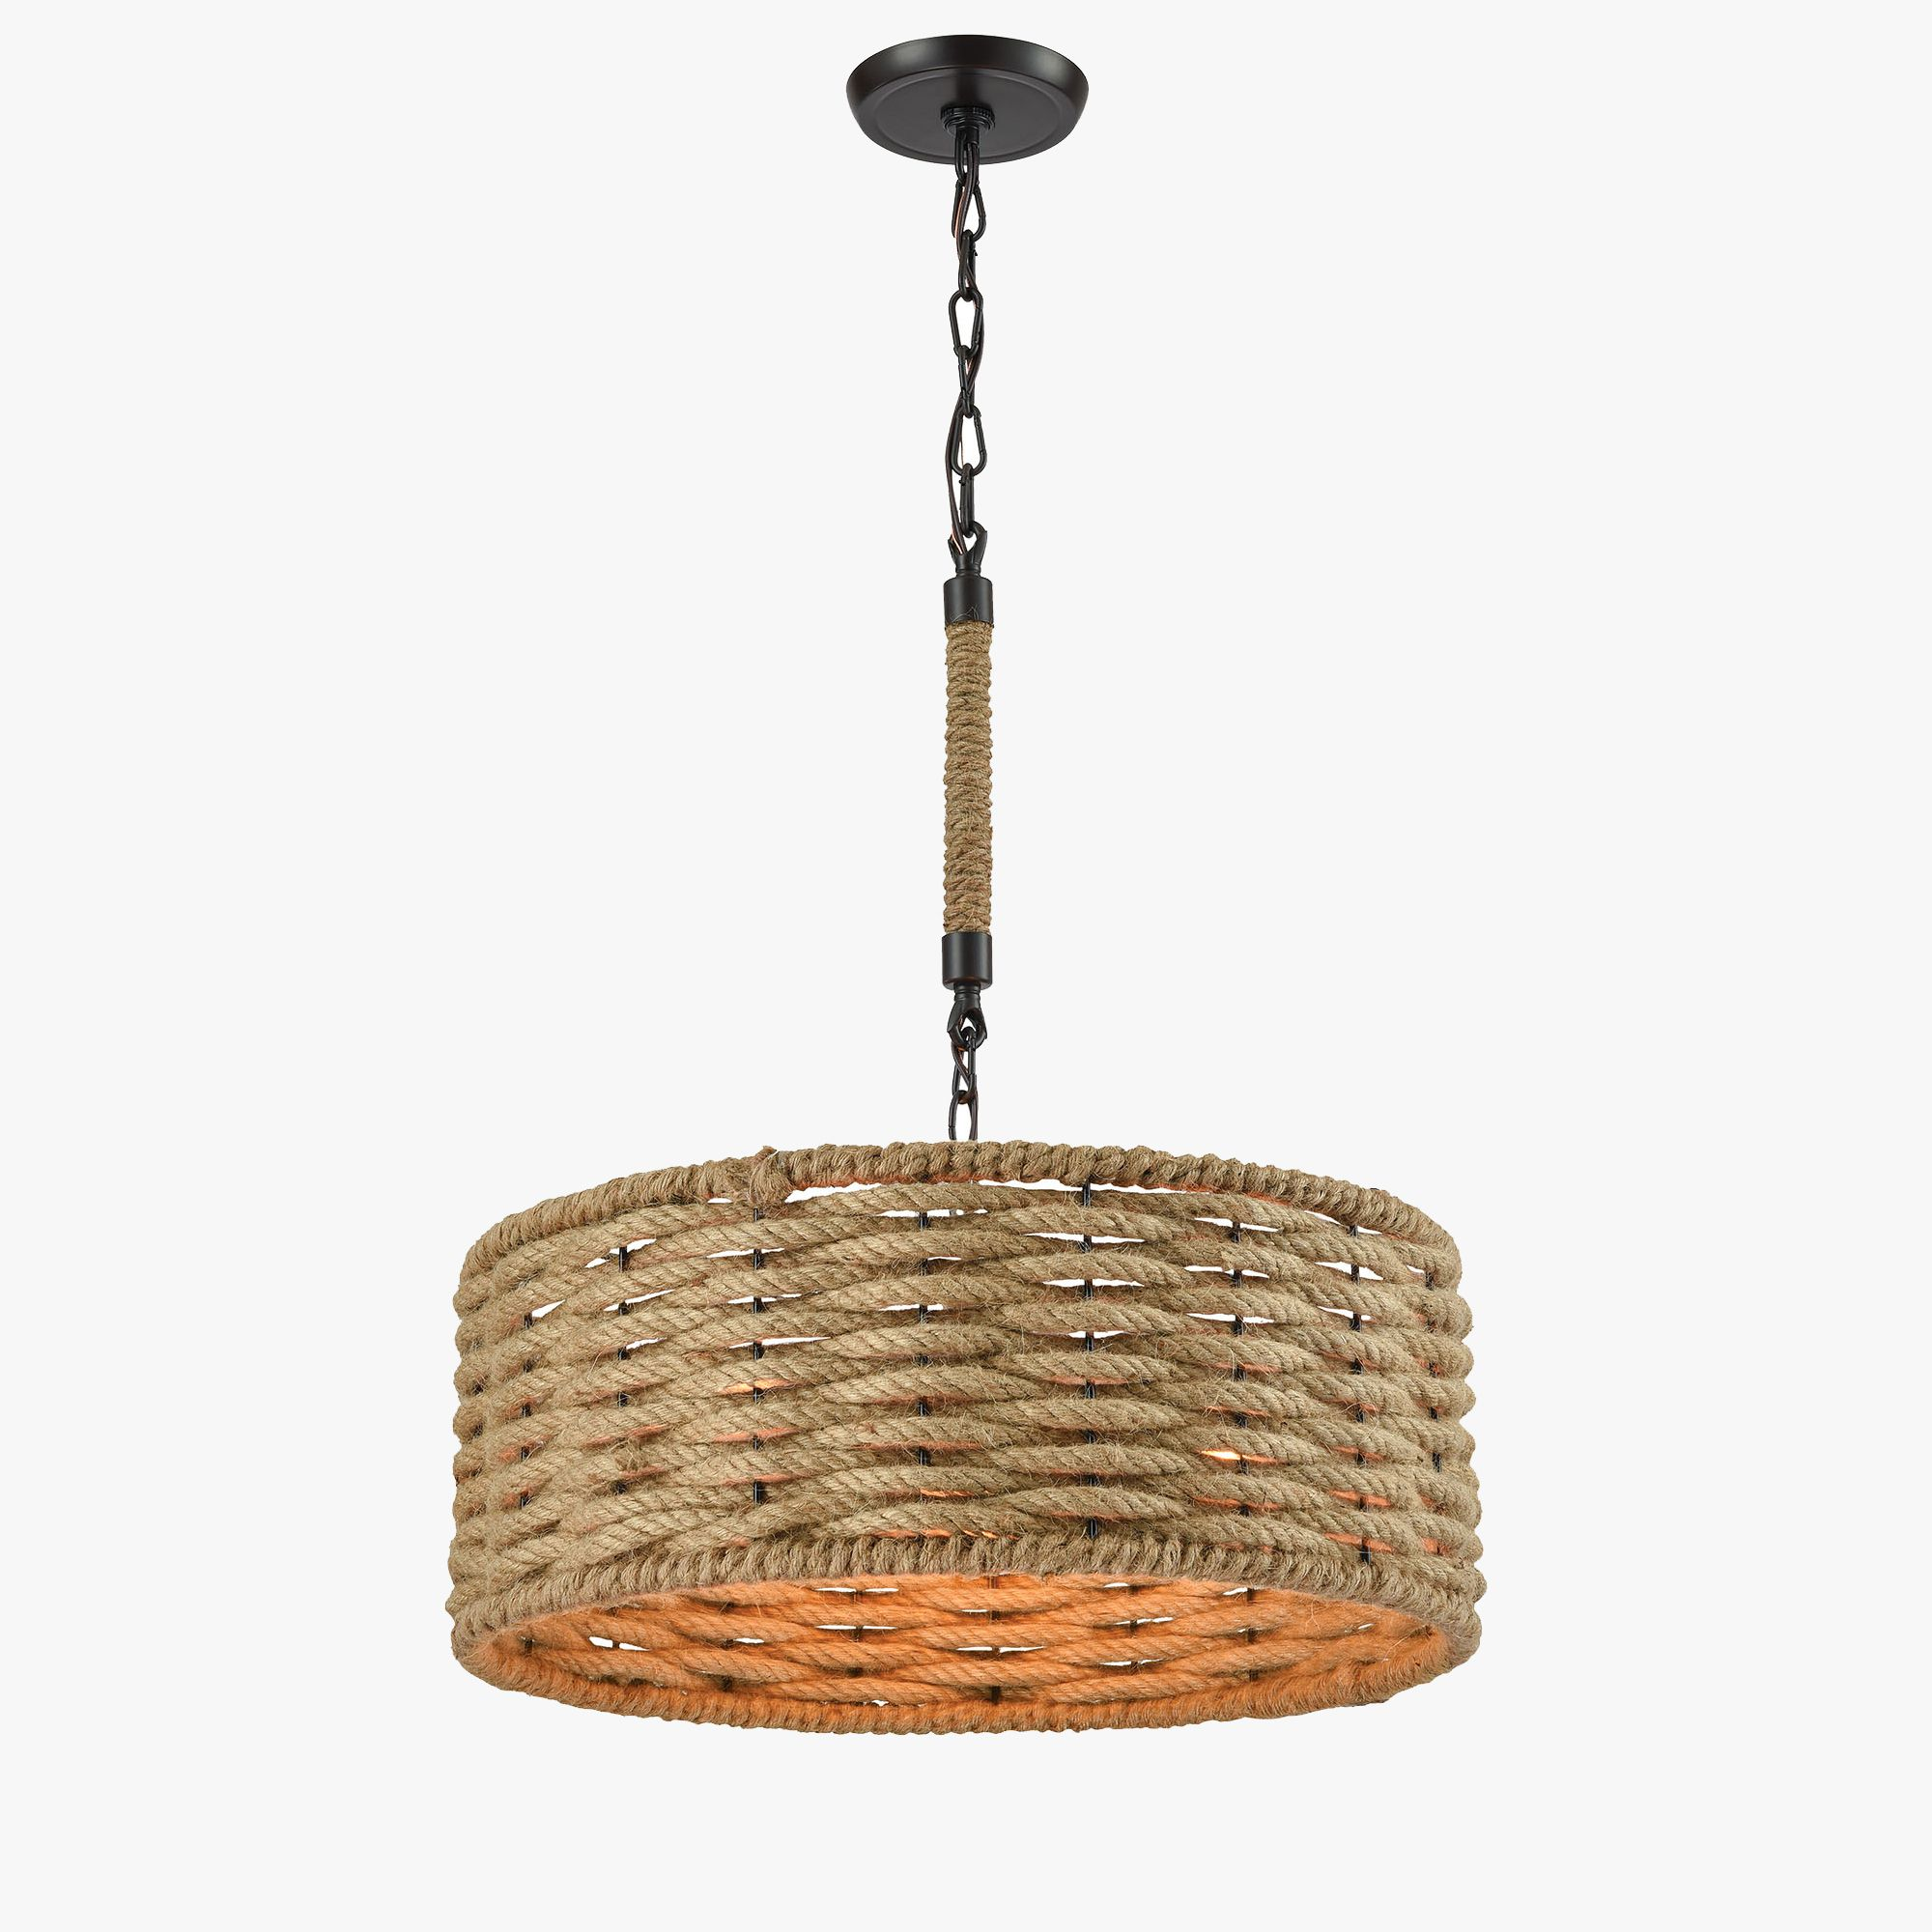 An intricate rope-woven drum chandelier with oil rubbed bronze finishes provides the perfect coastal style to any space.